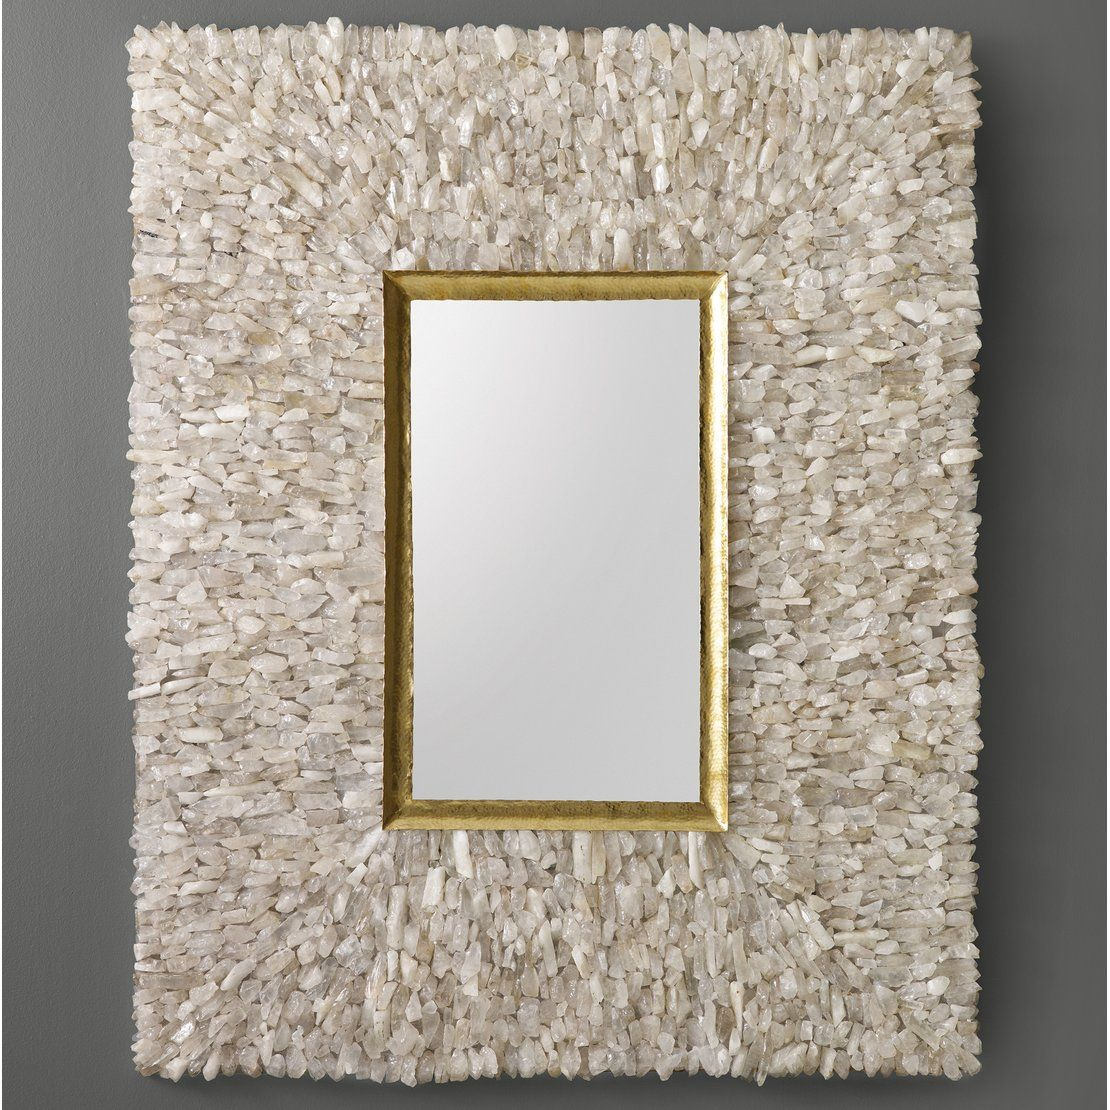 Neoteric Crystal Wall Mirror Glitz Floral Modern Rectangle Regarding Sajish Oval Crystal Wall Mirrors (View 24 of 30)